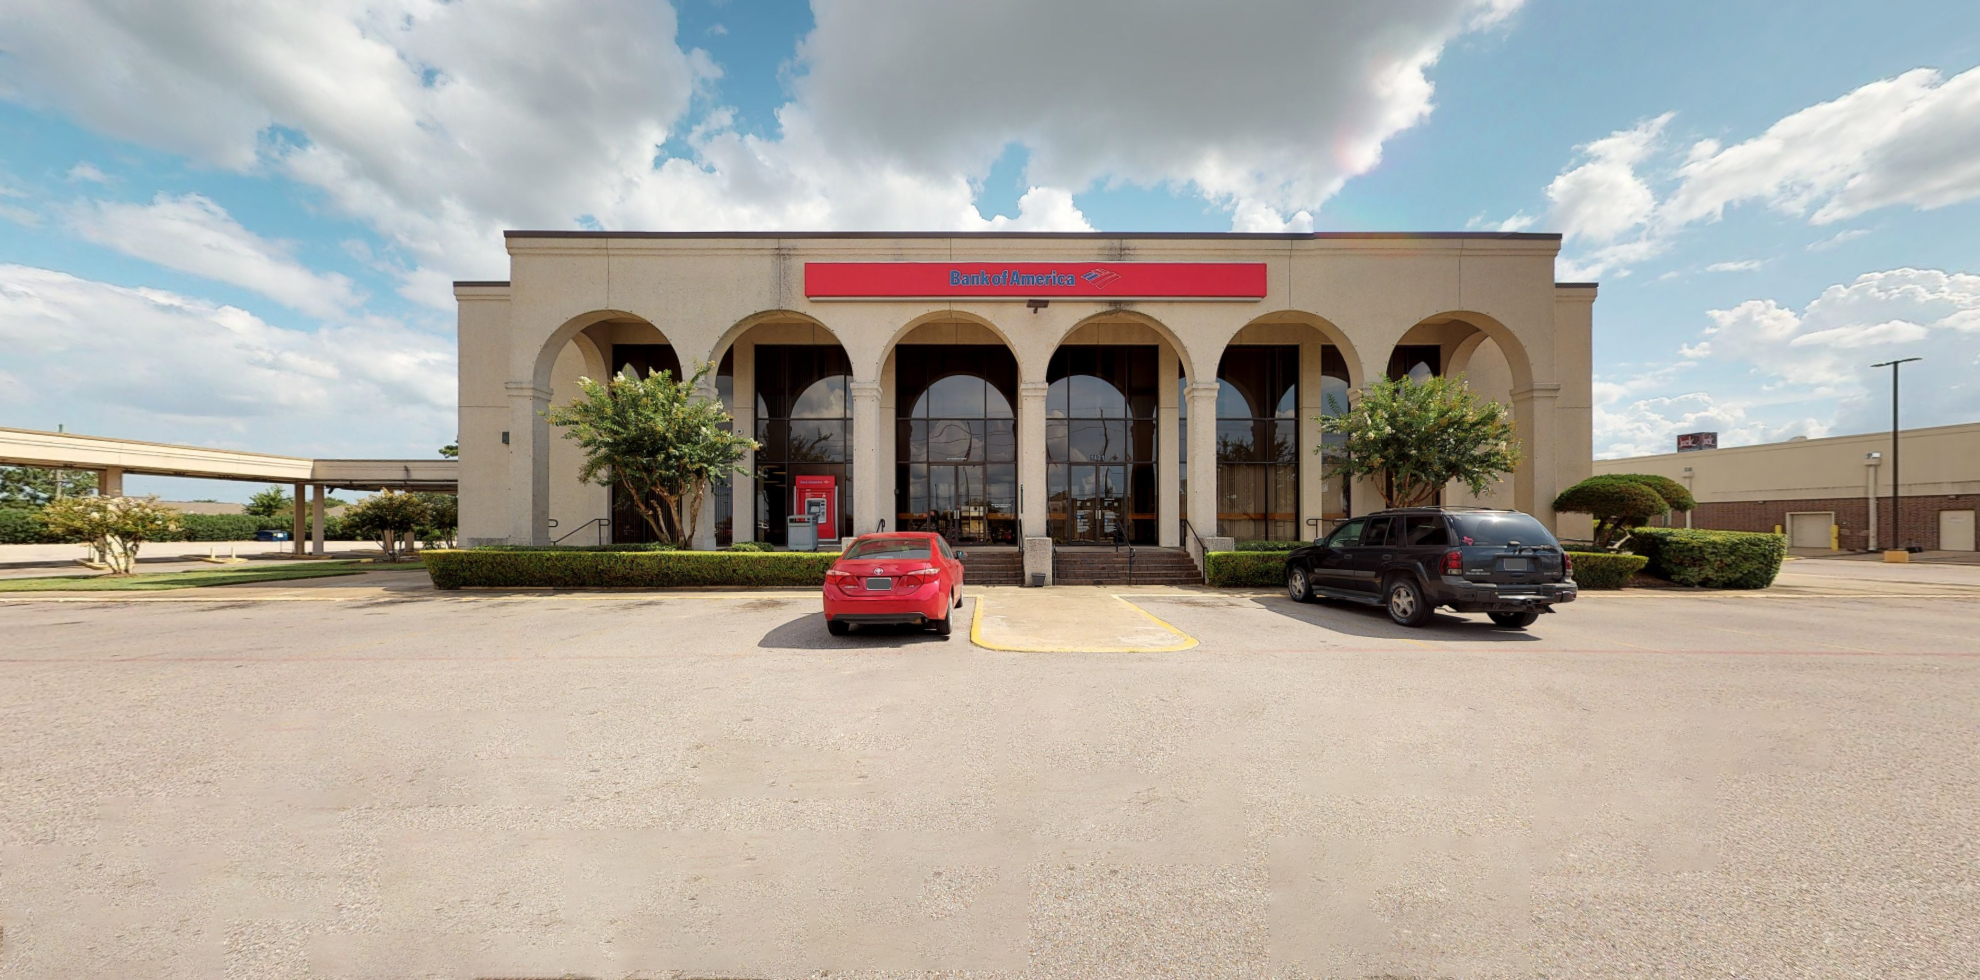 Bank of America financial center with drive-thru ATM   1431 Graham Dr, Tomball, TX 77375